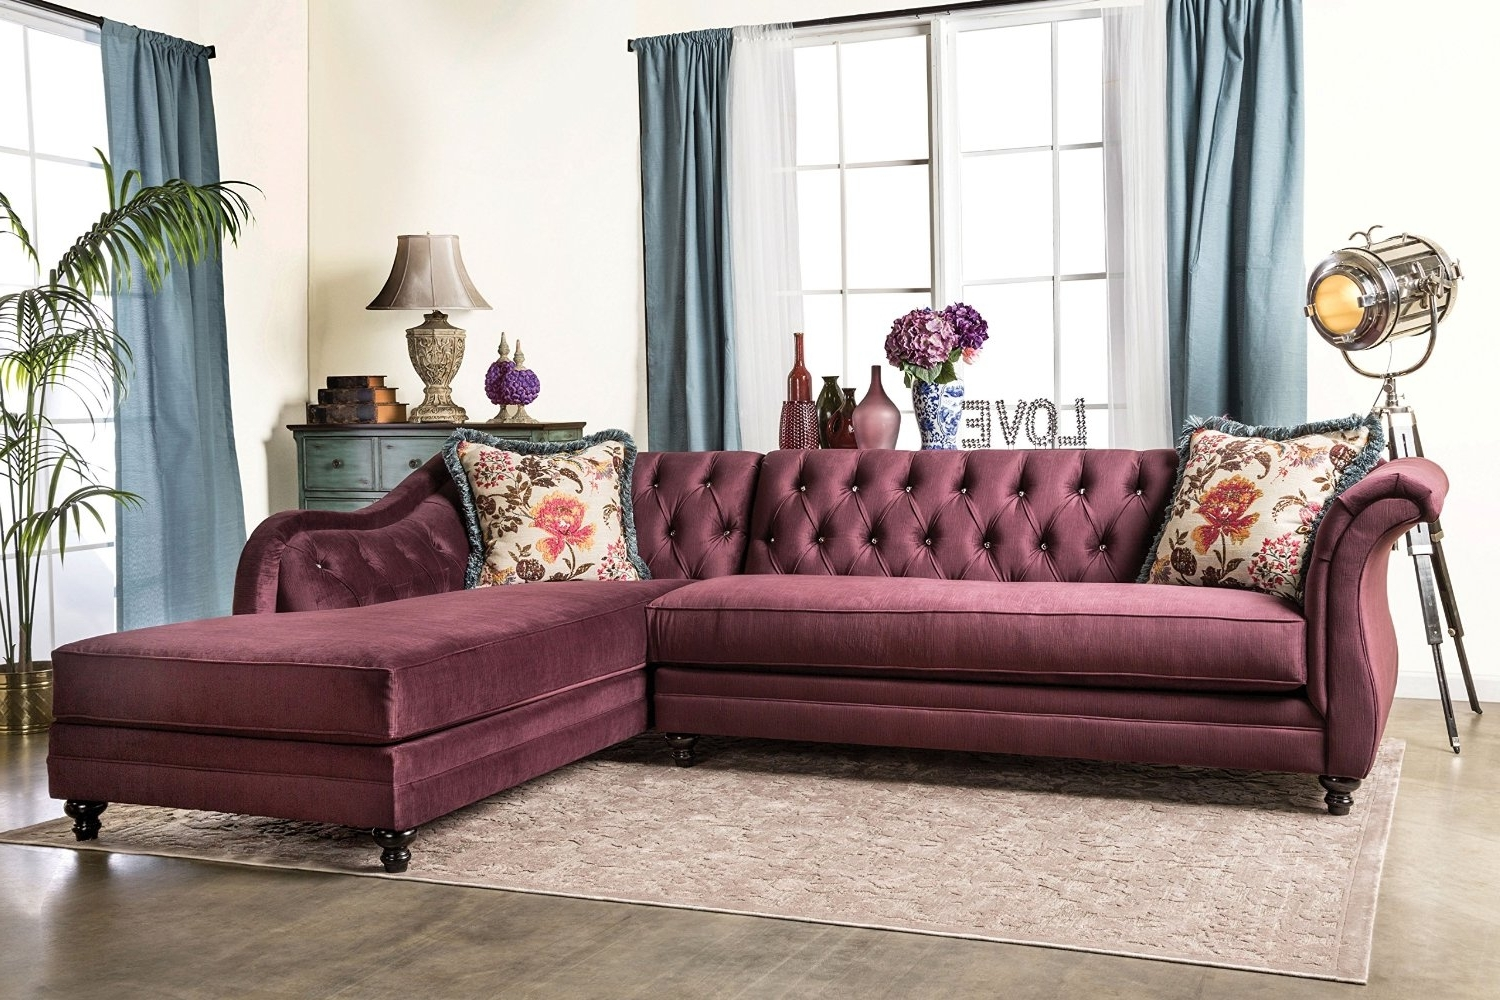 Chesterfield Sofas For Most Current 25 Best Chesterfield Sofas To Buy In  (View 1 of 20)